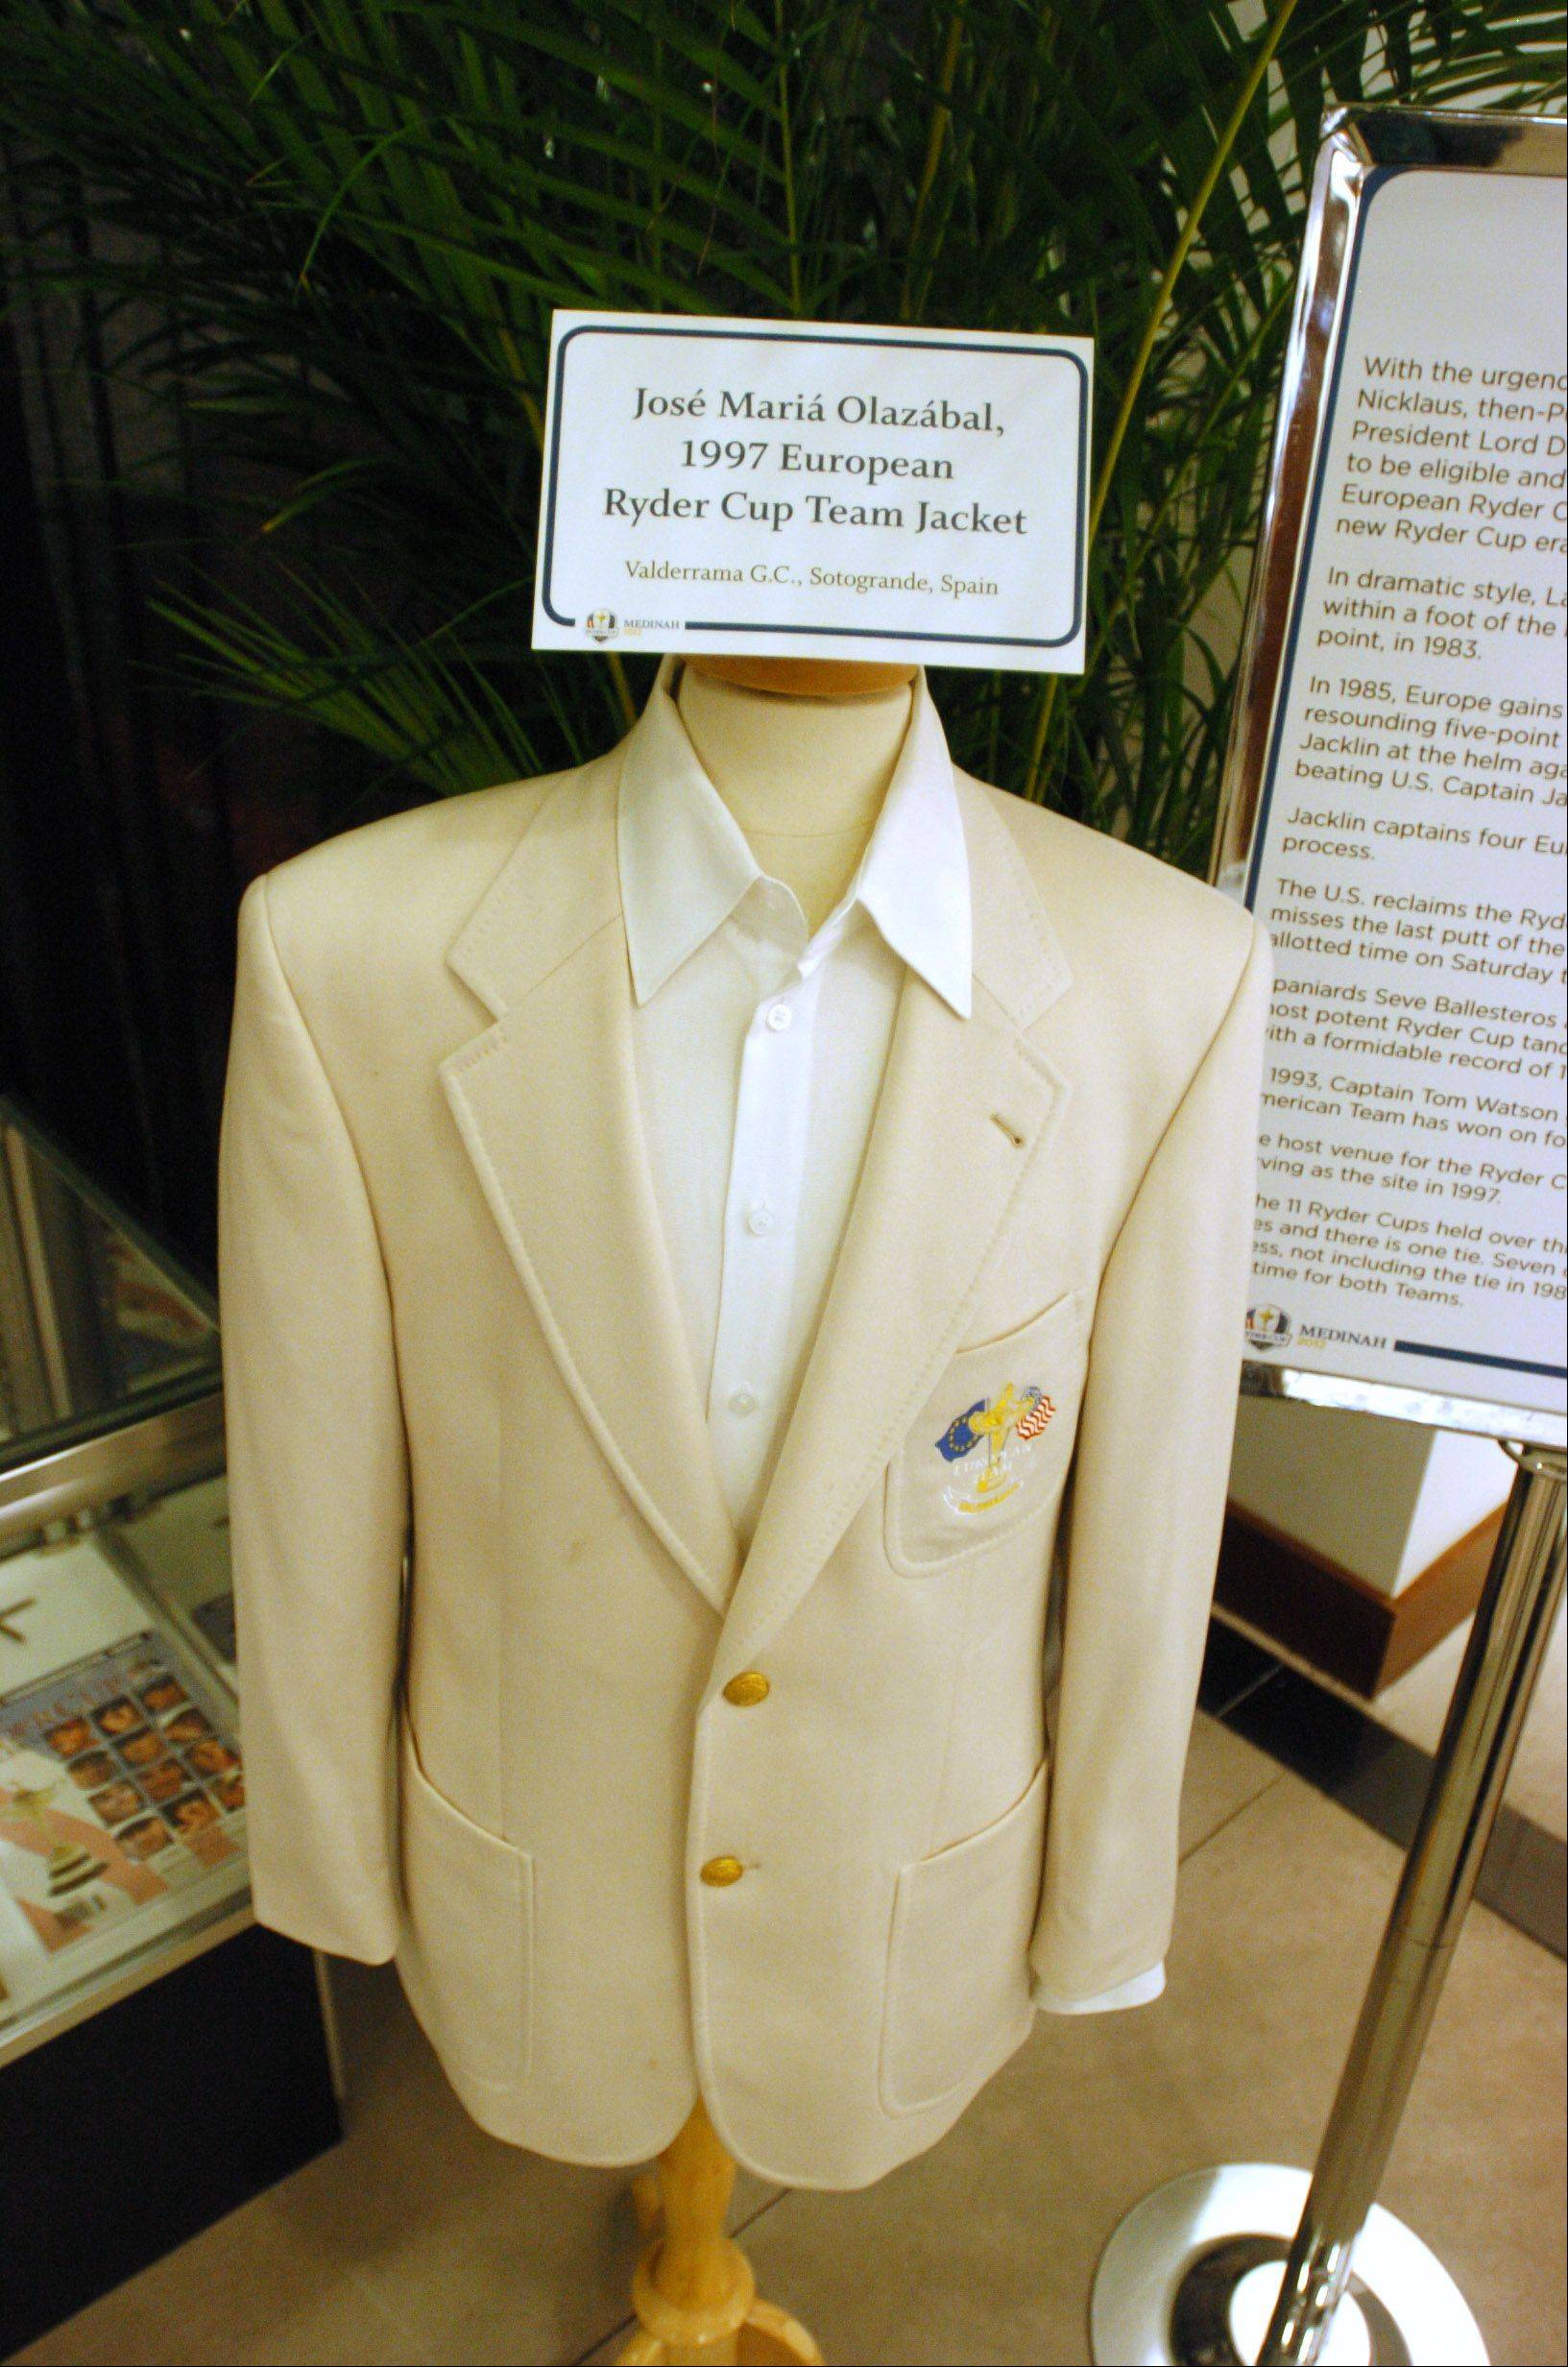 The Jose Maria Olazabal 1997 Ryder Cup Team Jacket is one of the many item s on display.